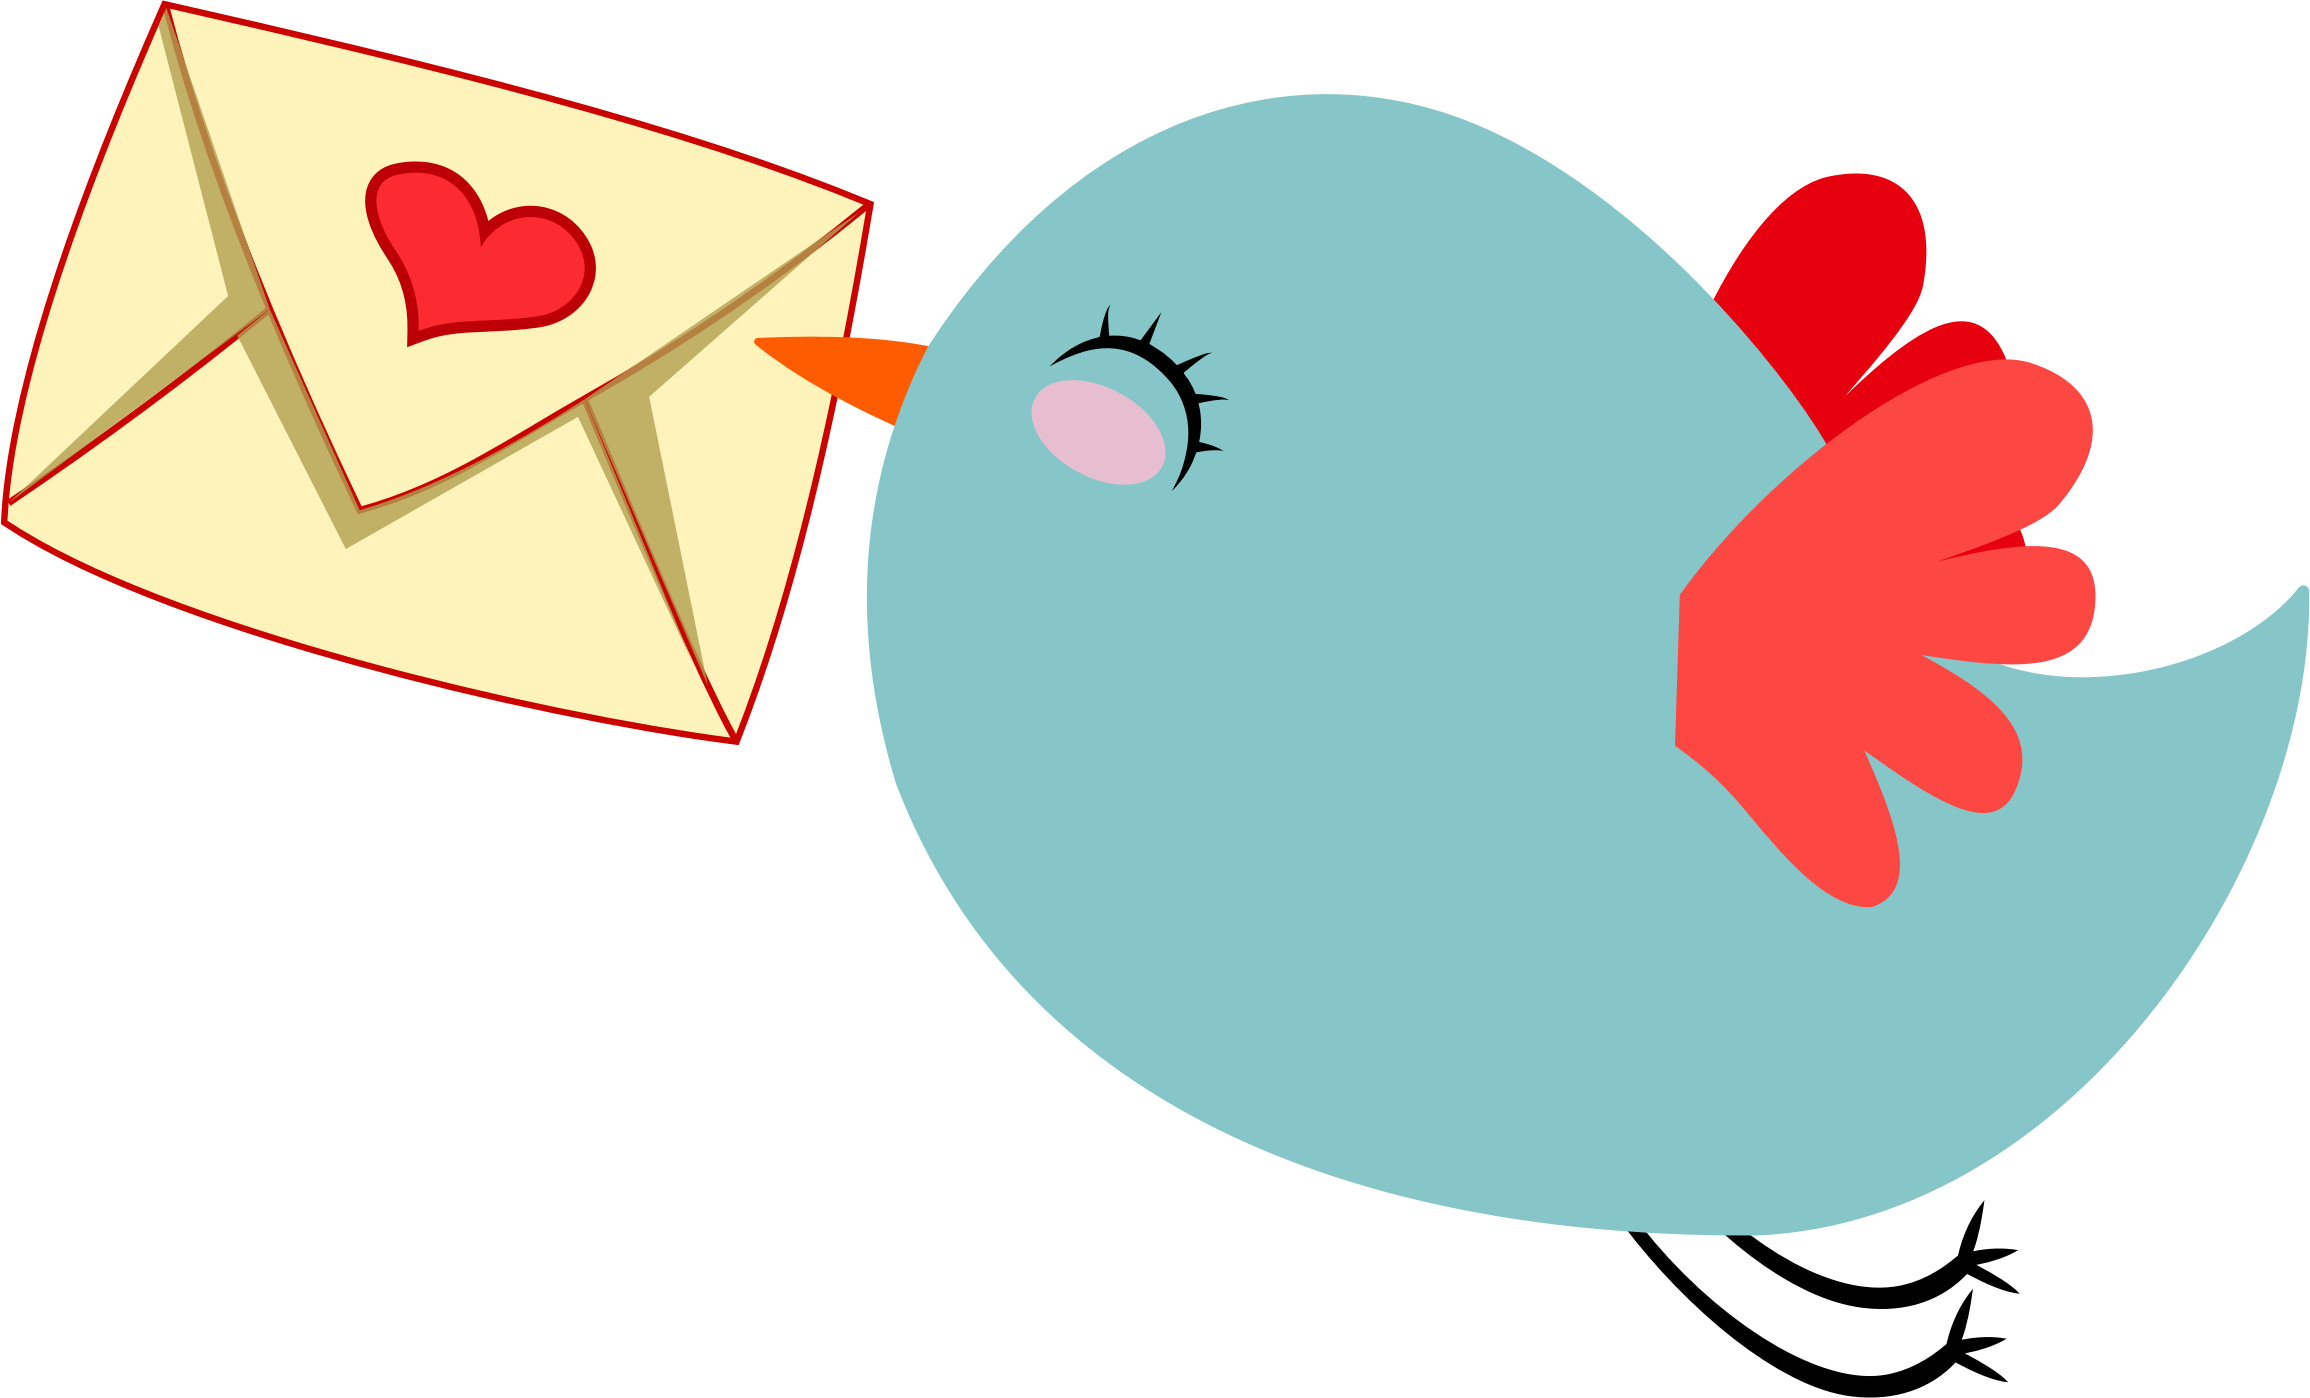 Star wars lifesavers clipart svg royalty free stock Cute Mail Carrier Bird by GDJ | นกน้อย | Pinterest | Bird, Clip art ... svg royalty free stock